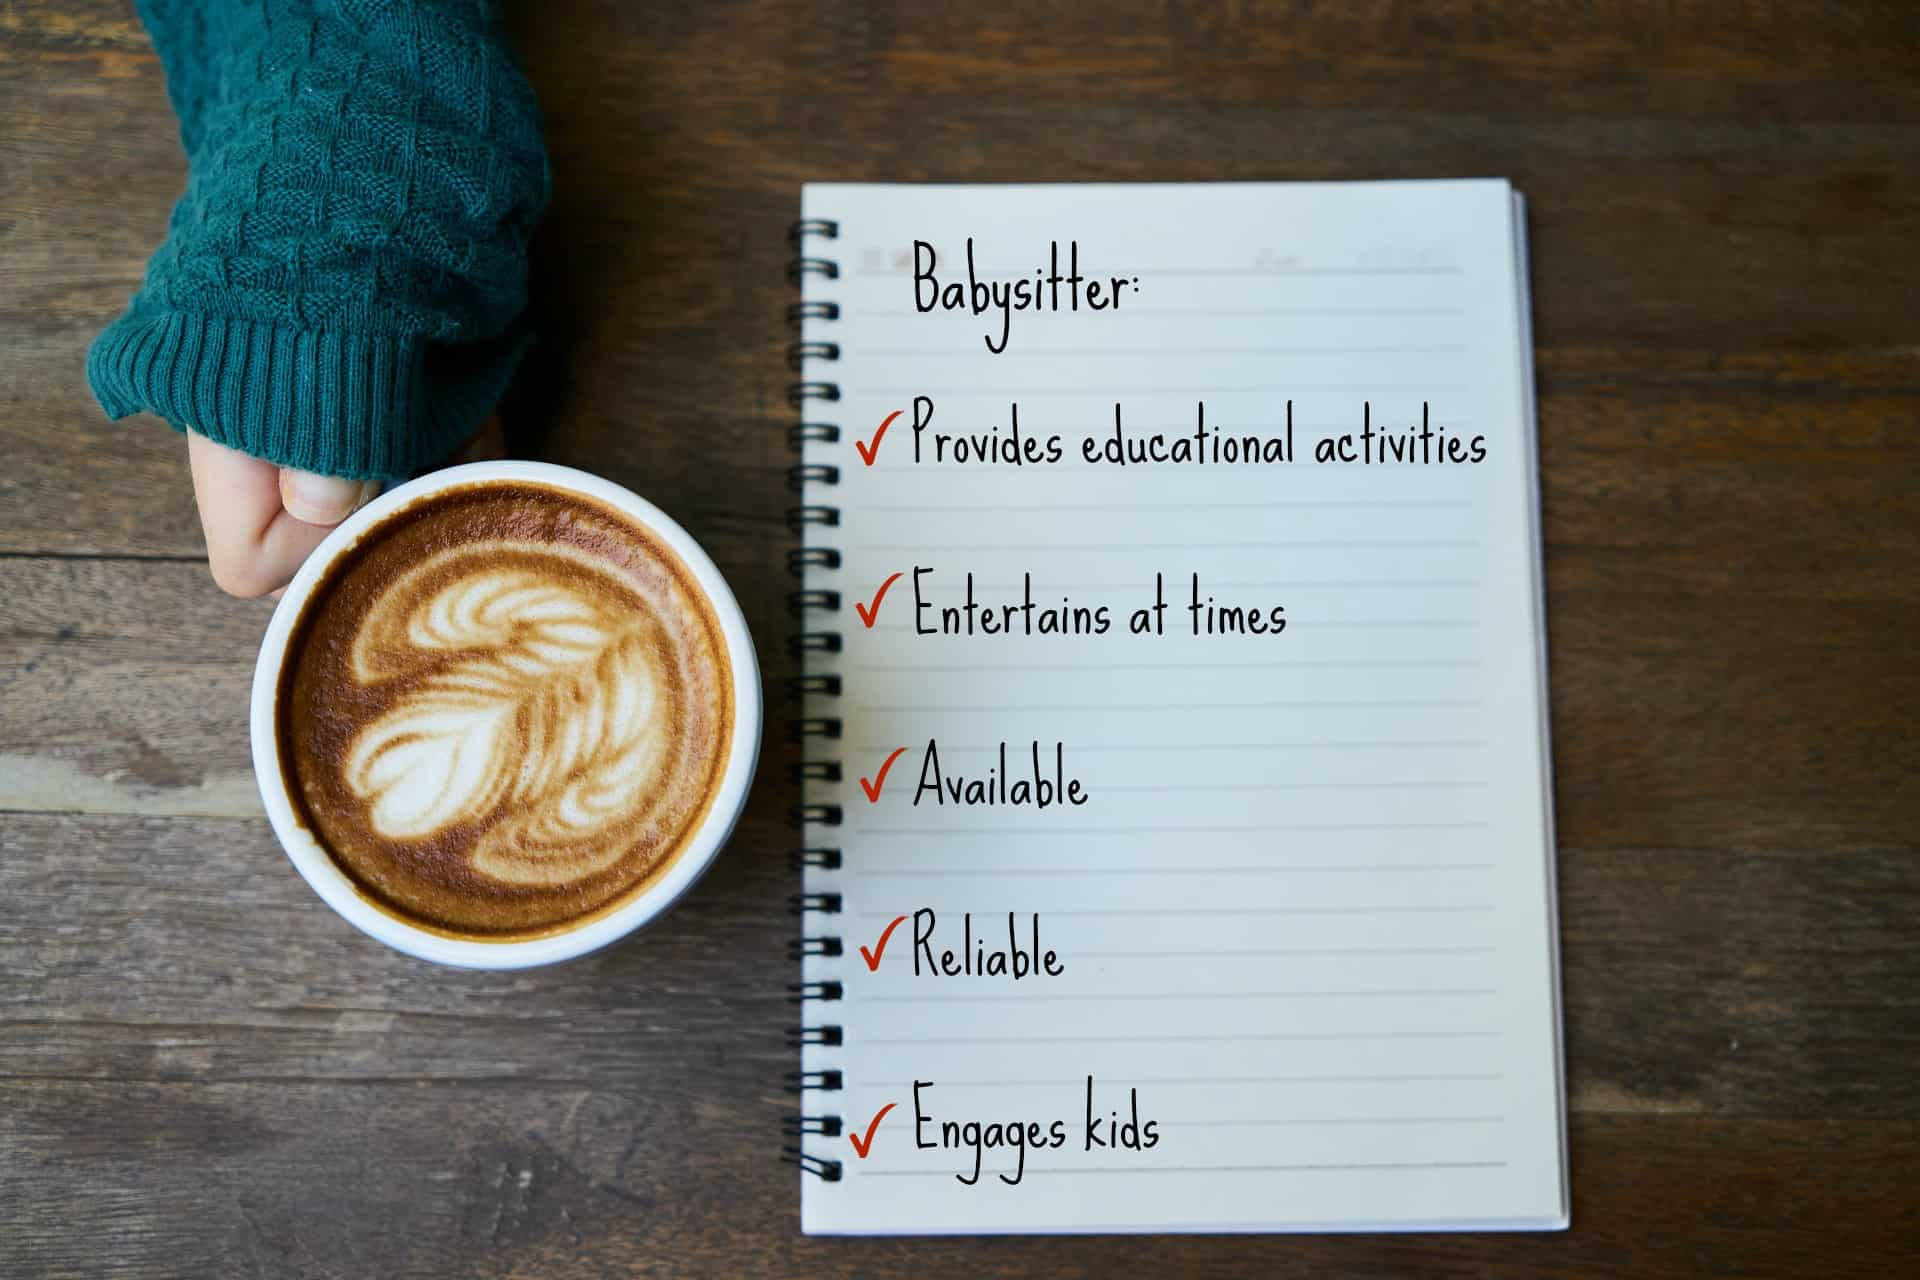 sweater sleeve covering hand holding a latte next to a notebook with Text = Babysitter, Provides educational activities, entertains at times, available, reliable, engages kids.